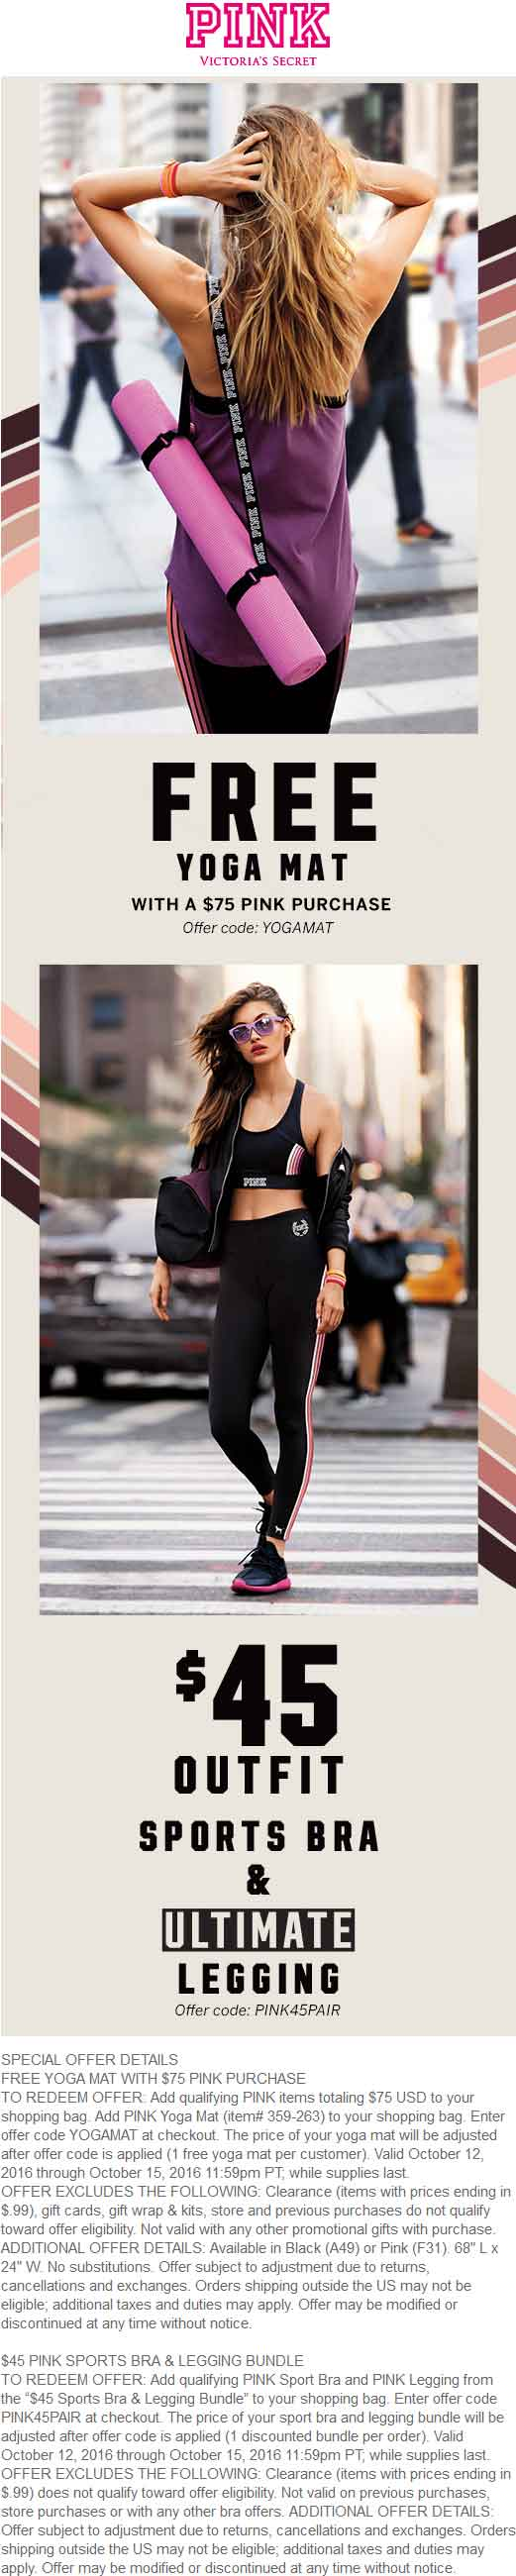 Victorias Secret Coupon March 2018 Free yoga mat with $75 on PINK spent at Victorias Secret via promo code YOGAMAT